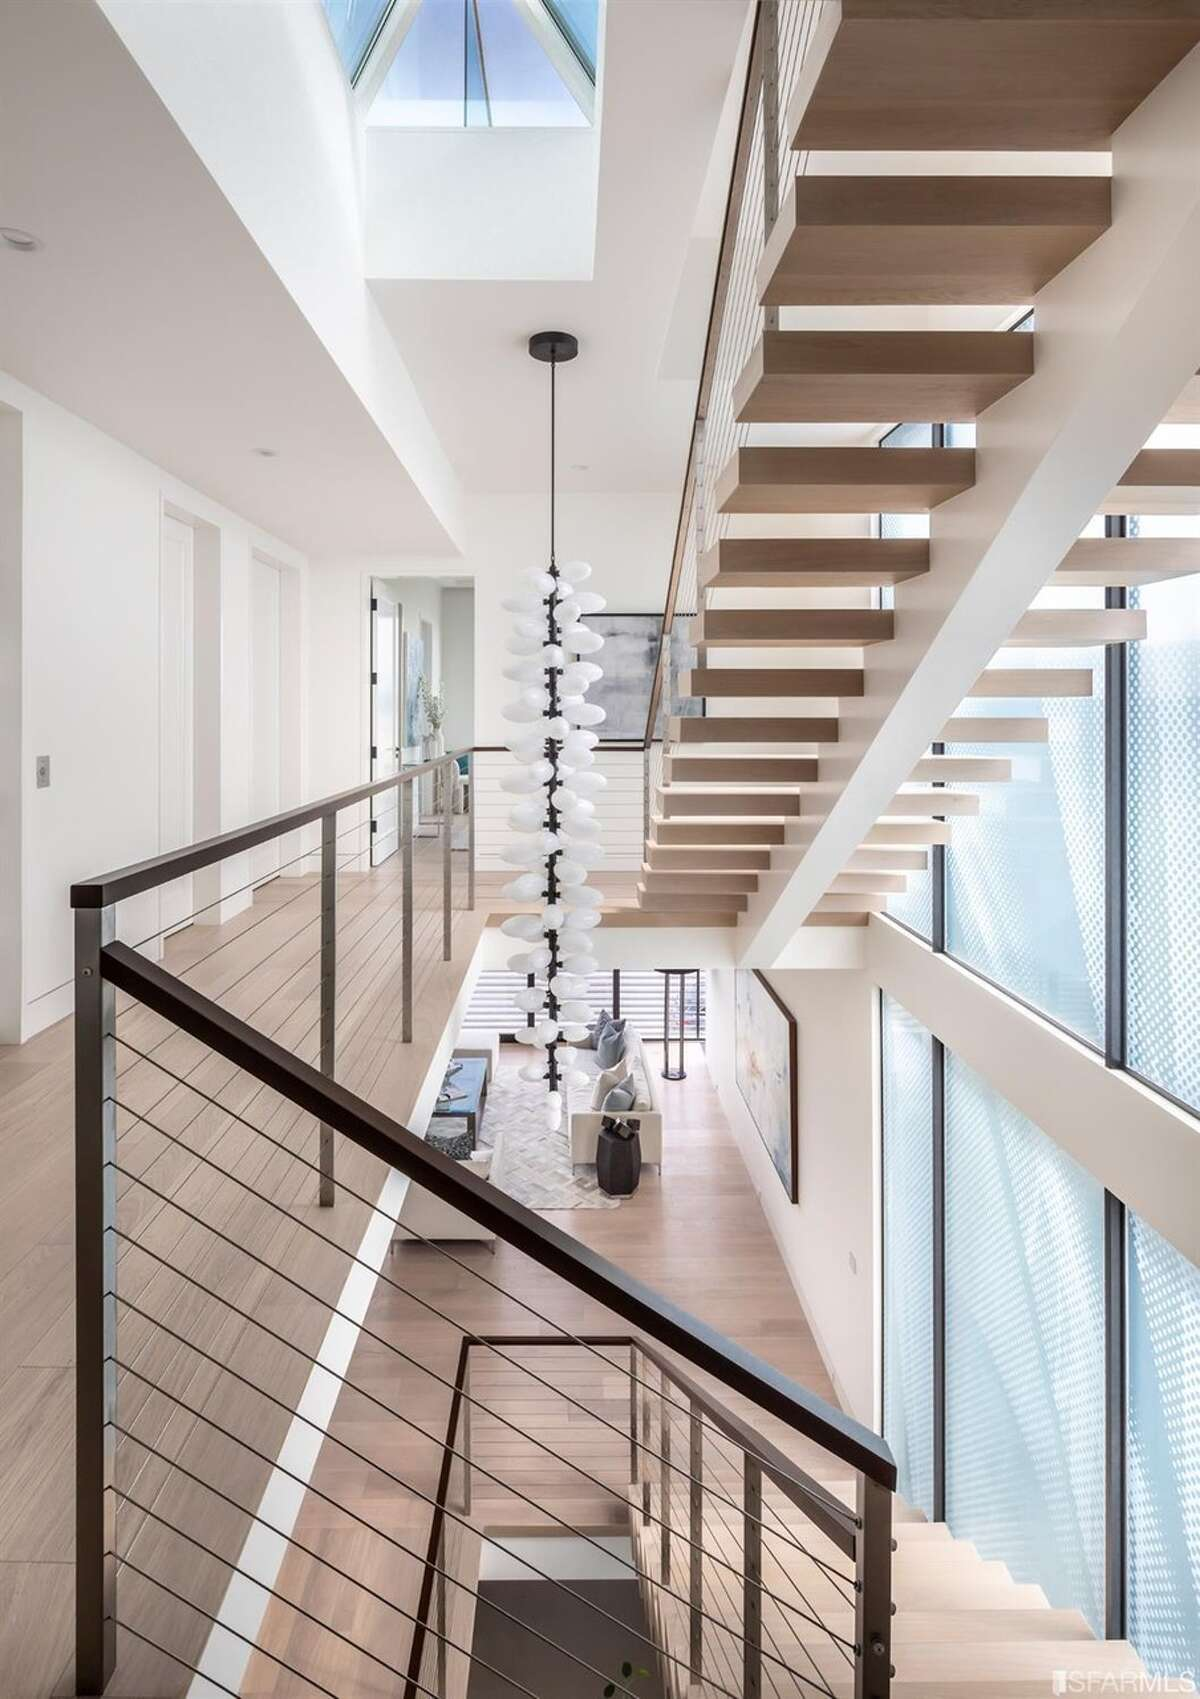 """The floors are connected via this light-filled stairway, though the home also has an elevator. But given that the five-bedroom, 7.5-bath property has over 7,000 square feet, it's remarkable that it only has three levels of indoor space, said Moshayedi. """"Most comparable homes in the city are much more vertical in the design, while this home has very large floor plates on each level due to the lot size,"""" she explained."""